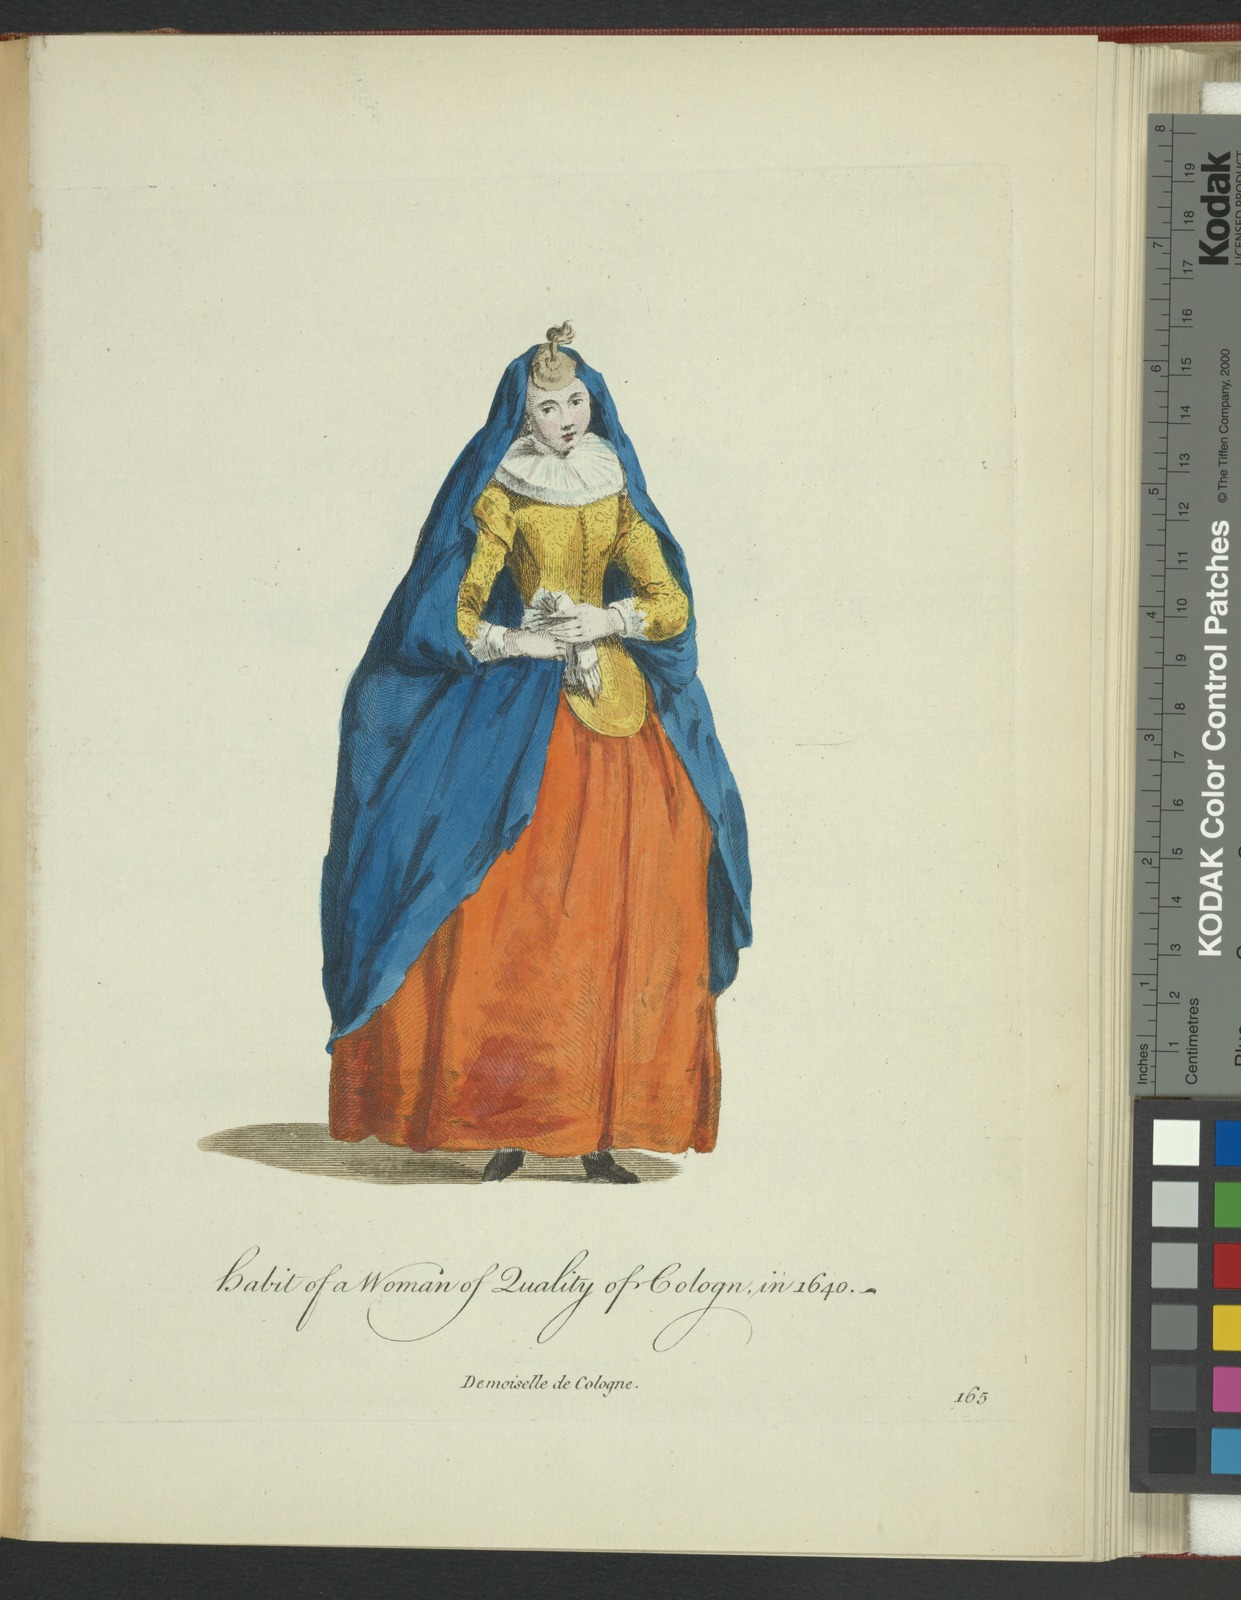 Habit of a woman of quality of Cologn[sic] in 1640. Demoiselle de Cologne.